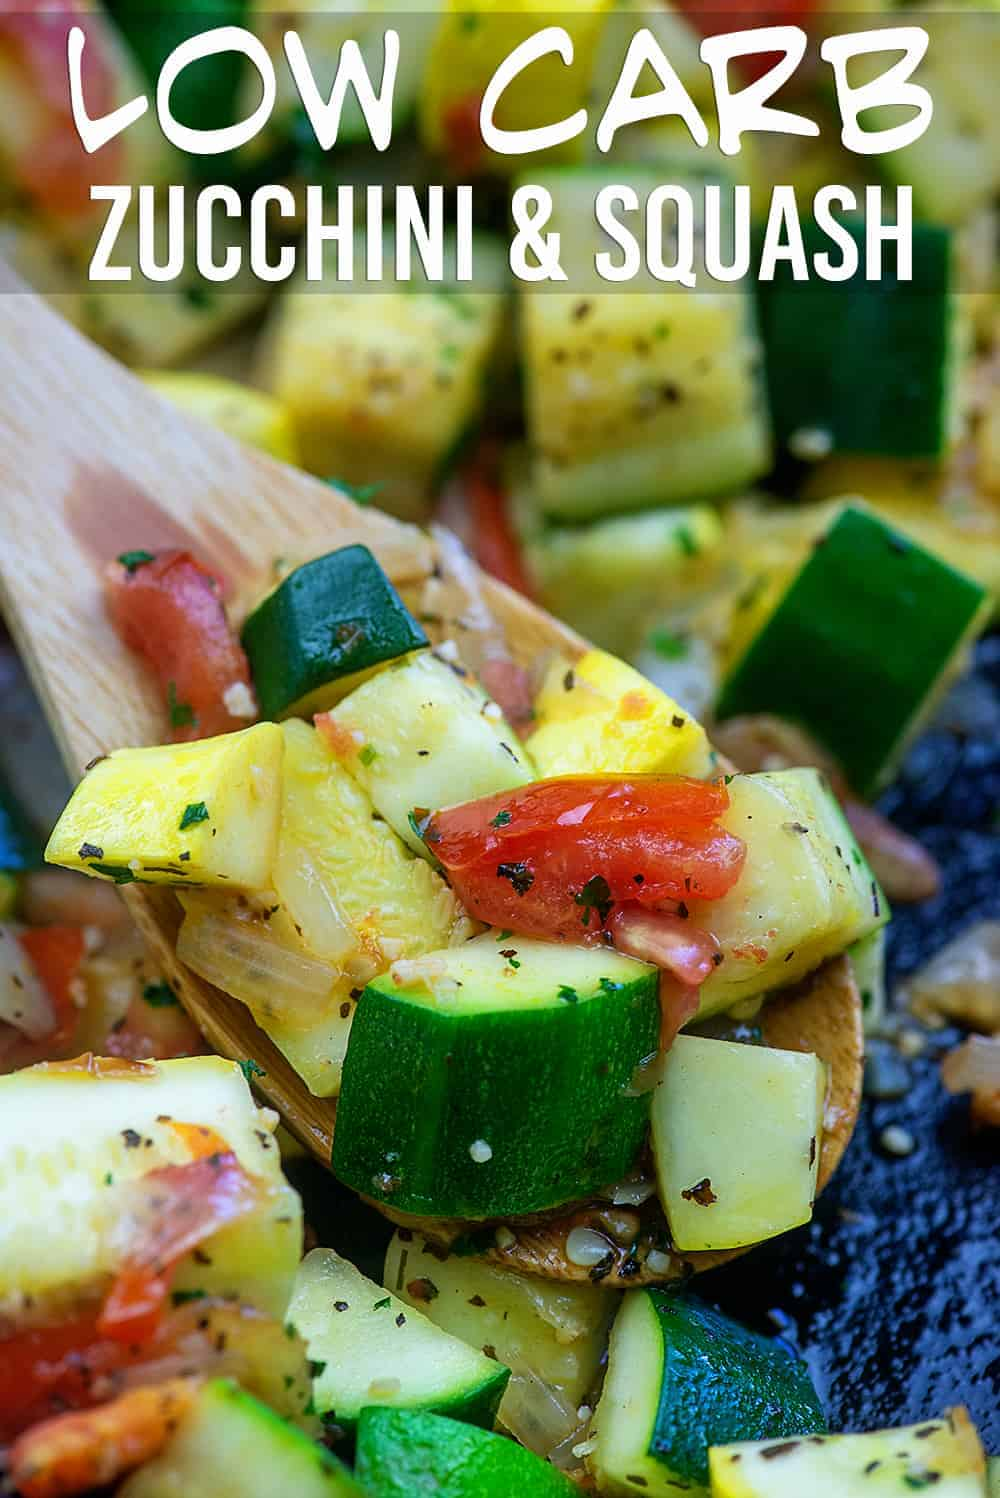 Sauteed Zucchini and Squash - this low carb side dish just tastes like summer and it's ready in about 15 minutes too! #lowcarb #keto #zucchini